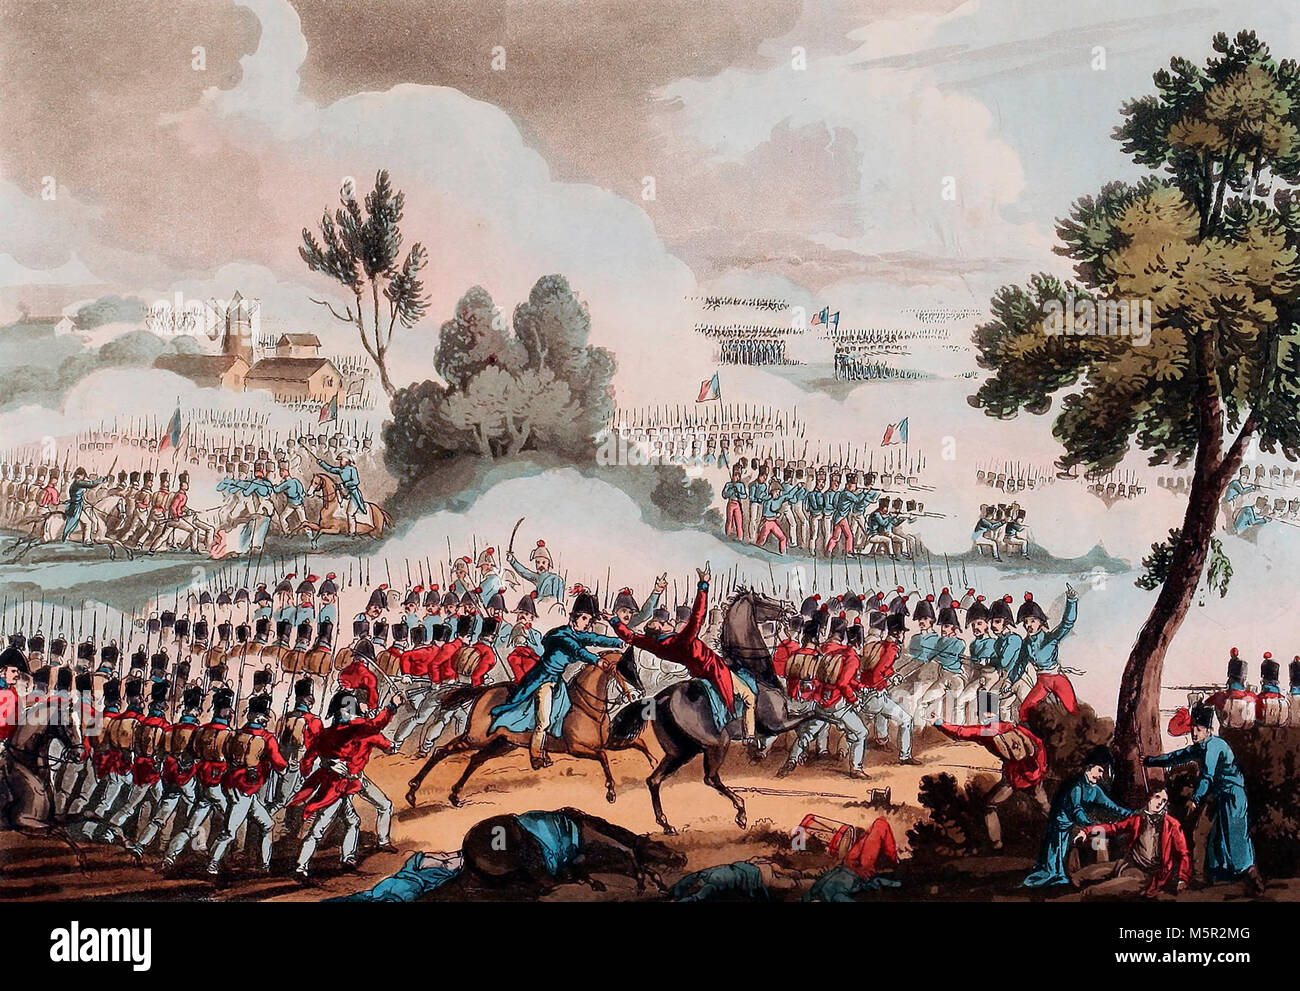 The left wing of the British Army in action at the Barrle of Waterloo - June 18, 1815 - Stock Image